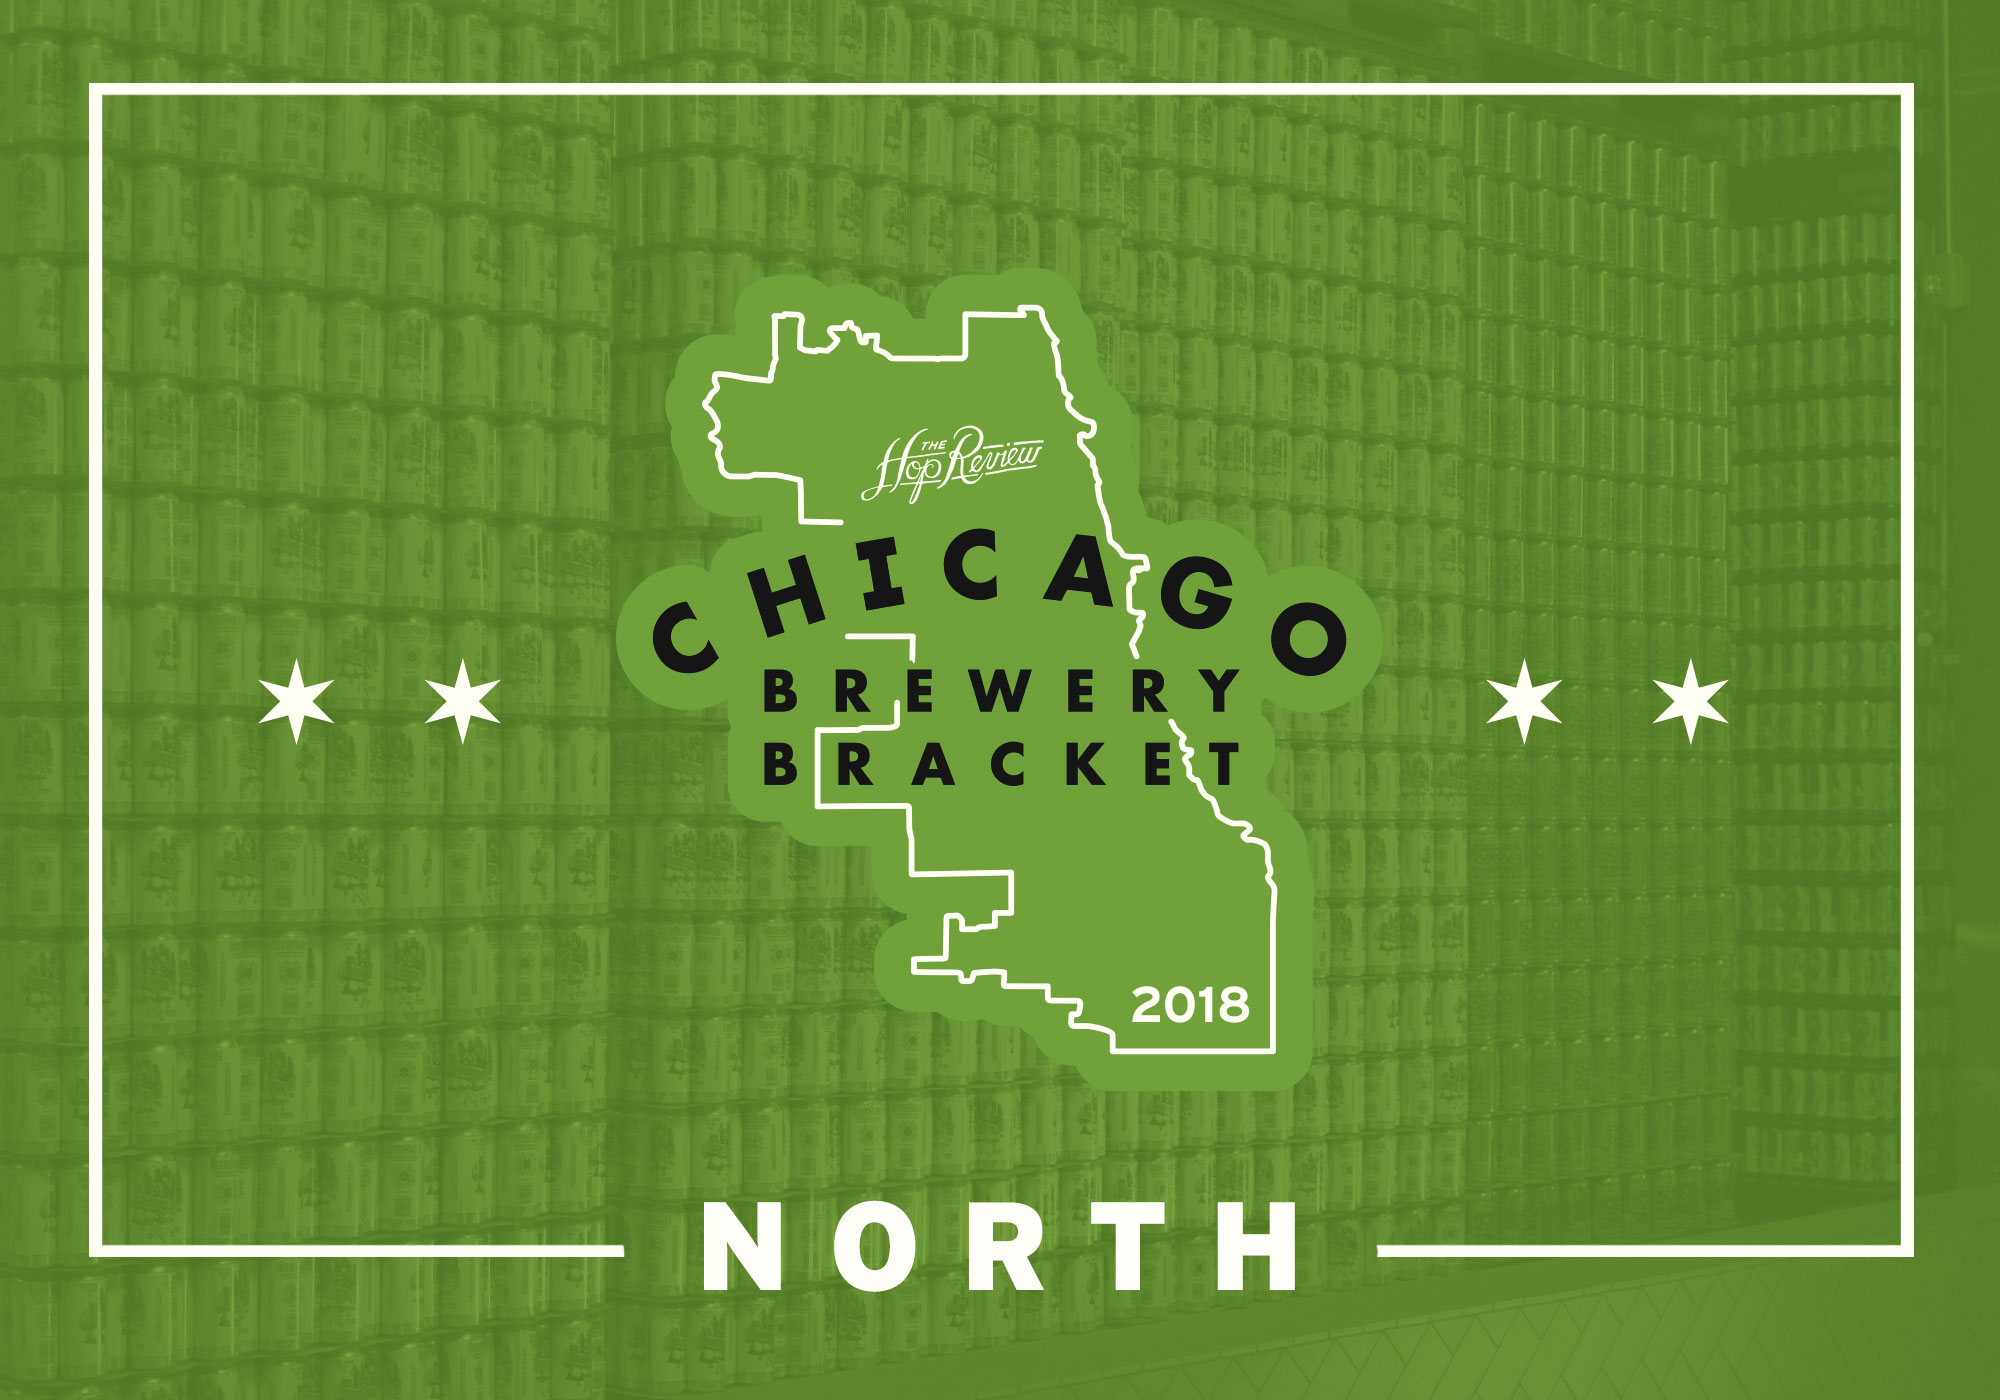 2018 Chicago Brewery Bracket: North – Rd. 2